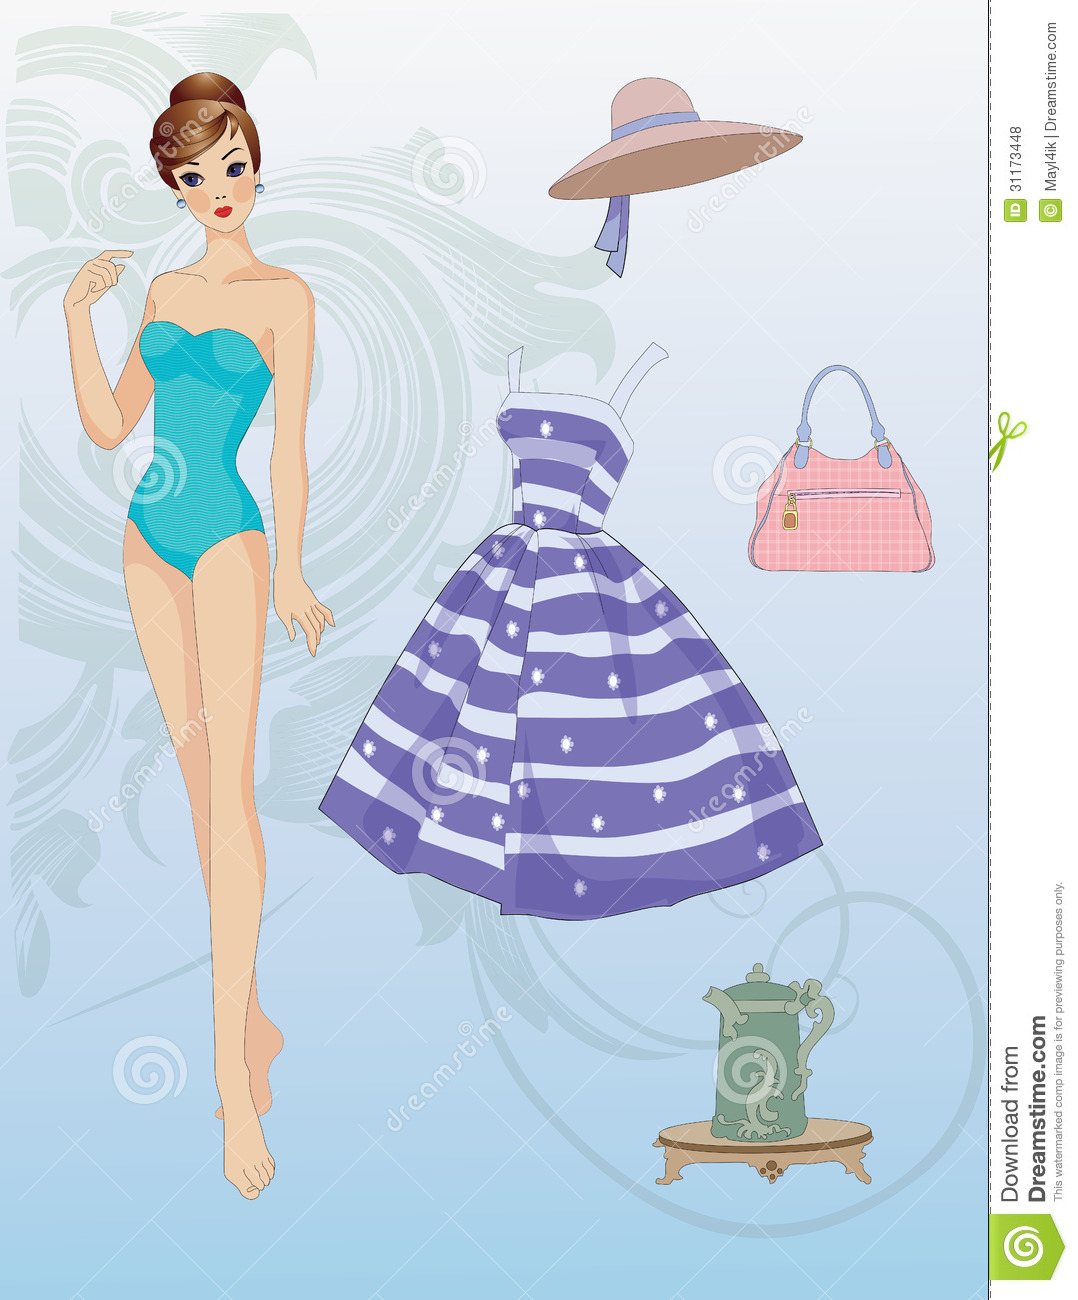 Paper Doll With Clothes Royalty Free Stock Photos - Image: 31173448